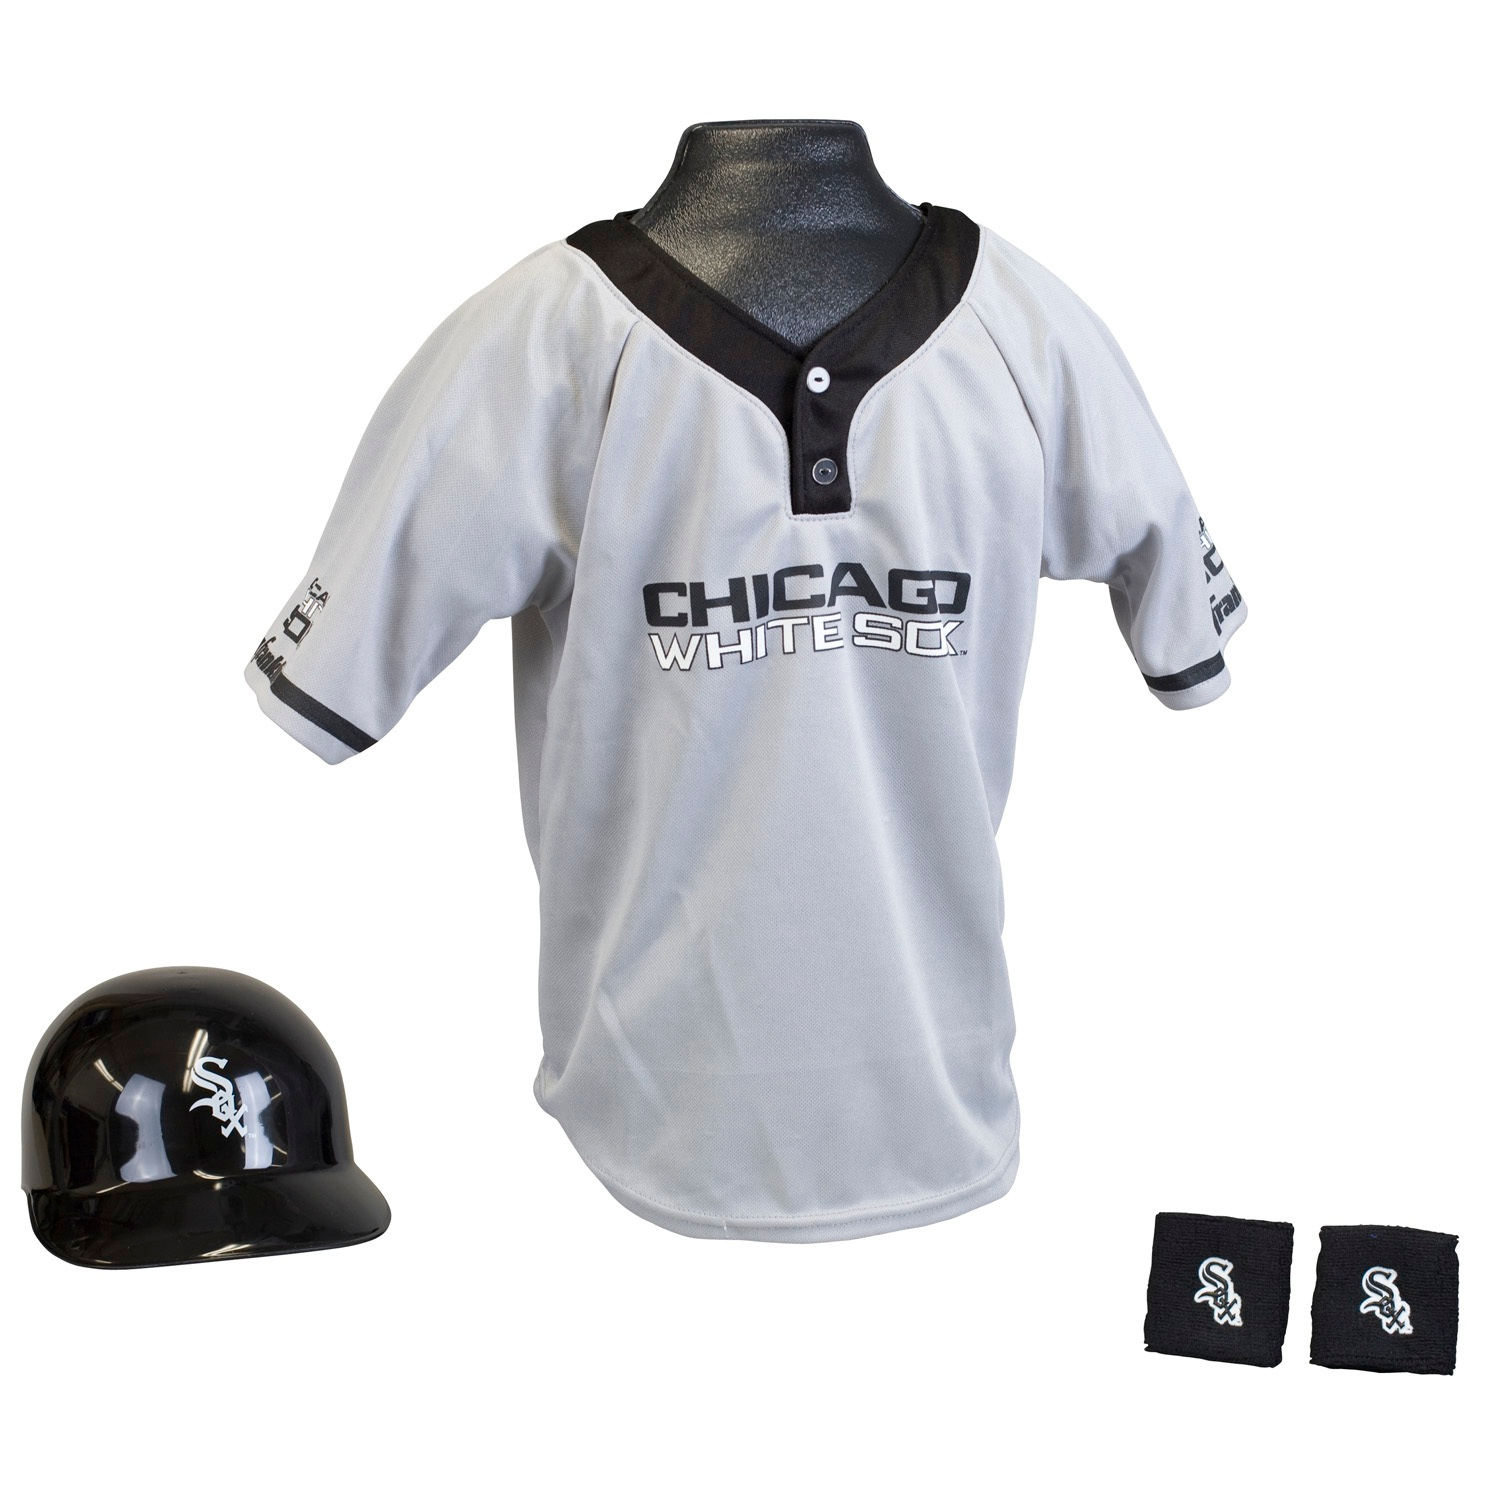 Chicago White Sox MLB Youth Uniform Set Halloween Costume